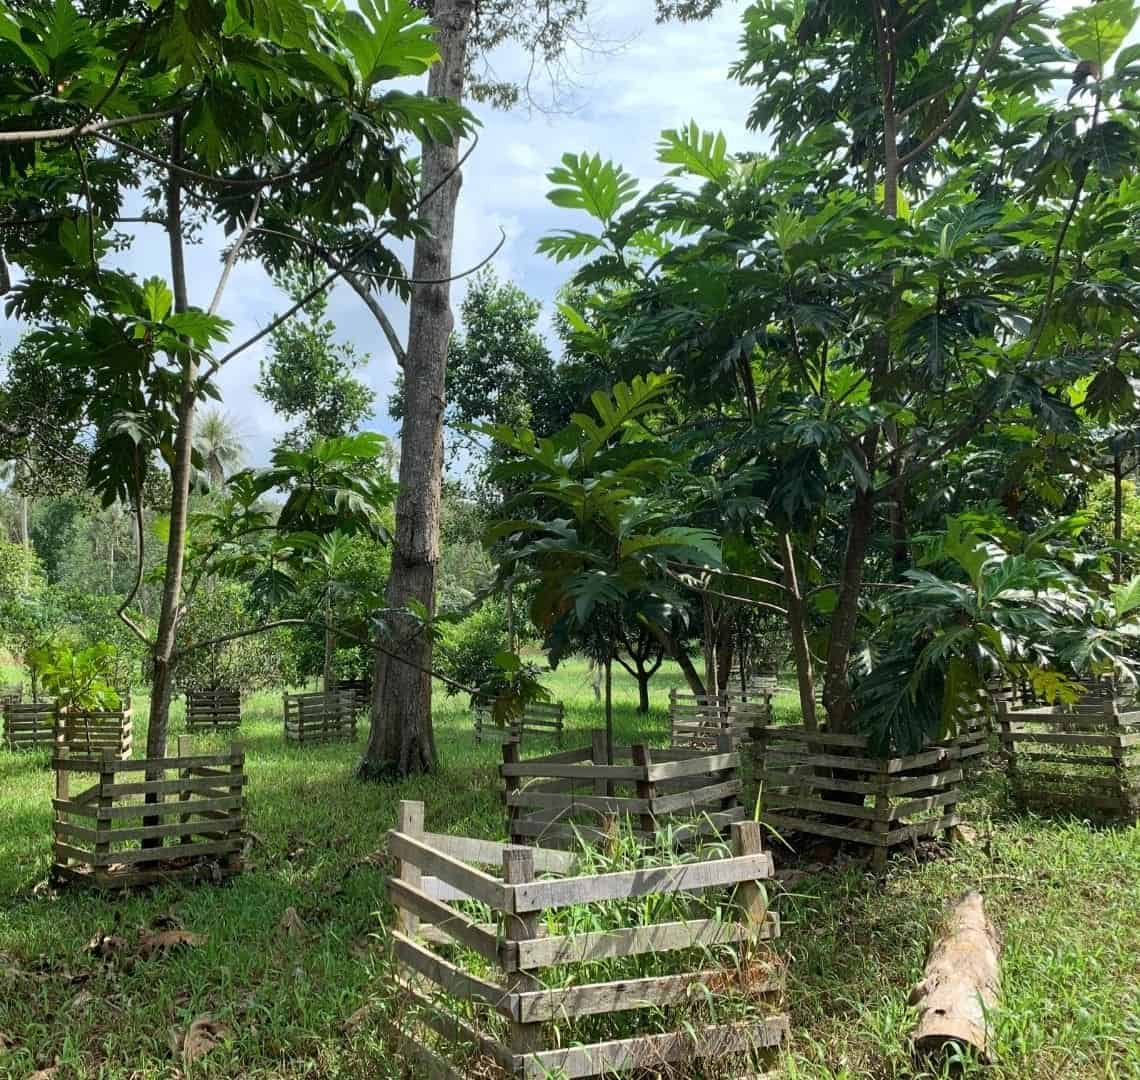 Ubin Fruit Orchard. There are a number of trees, each surrounded by a protective wooden fence. There are lots of very green leaves and the grass is green. Through the trees you can see a very watery blue sky.